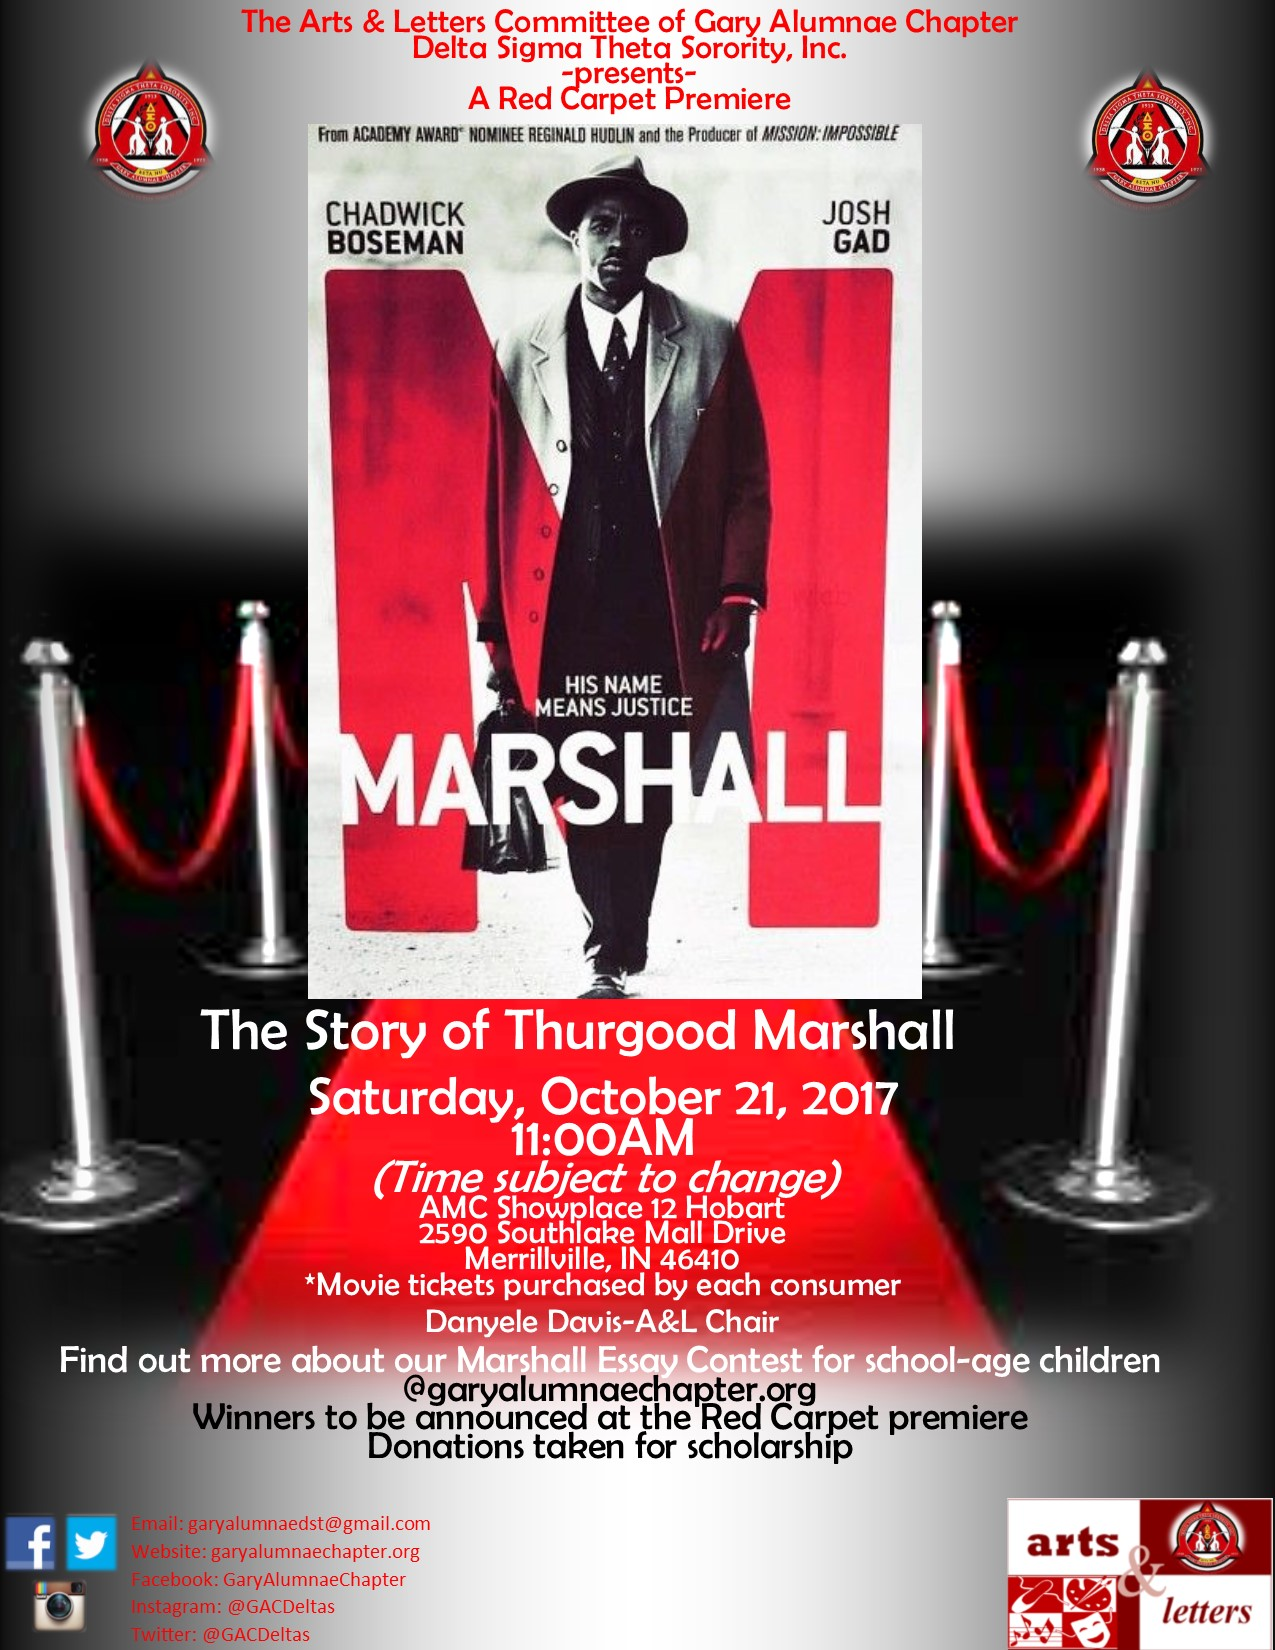 High School Essays Please Join The Arts And Letters Committee For Our First Red Carpet Movie  Premiere Of Marshall The Story Of Thurgood Marshall On Saturday Oct    What Is A Thesis Statement For An Essay also Essay Com In English Marshall  Delta Sigma Thetadelta Sigma Theta English Literature Essay Topics